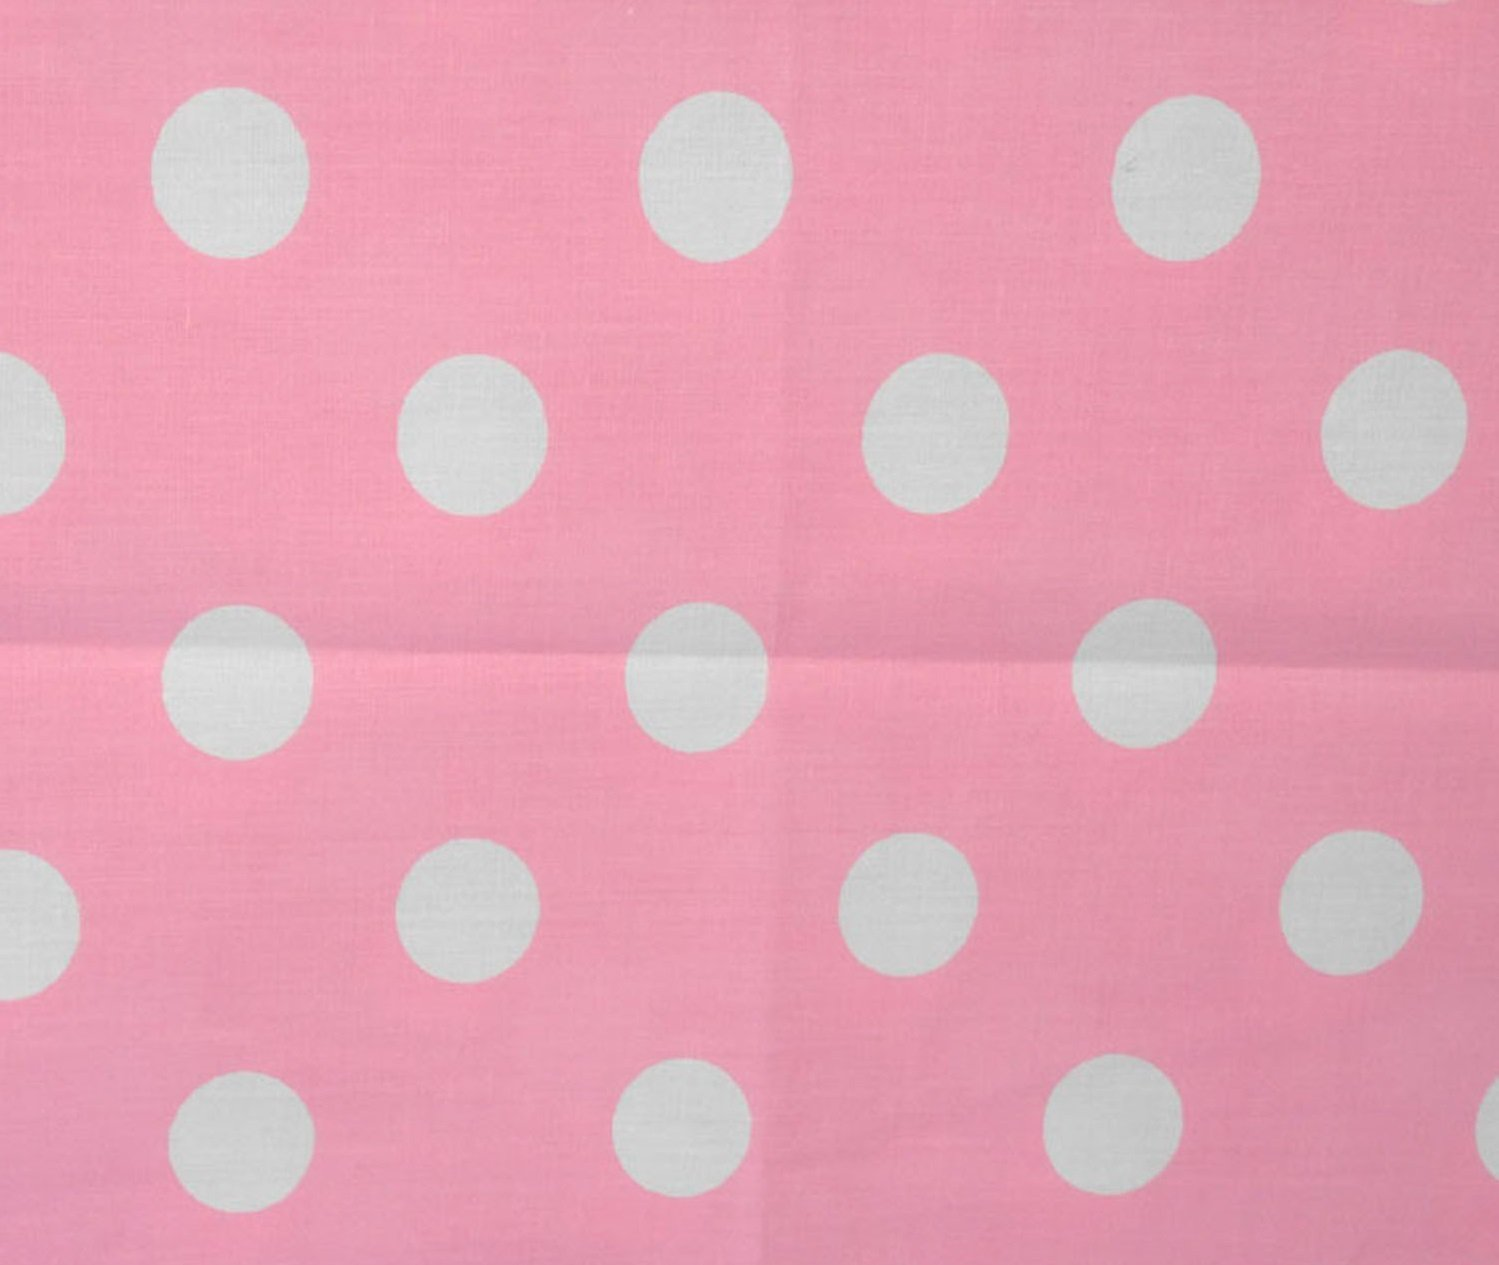 Big Polka Dot Poly Cotton White Dots on Pink 58 Inch Fabric By the Yard (F.E.つ) by The Fabric Exchange   B00J3ASUNW